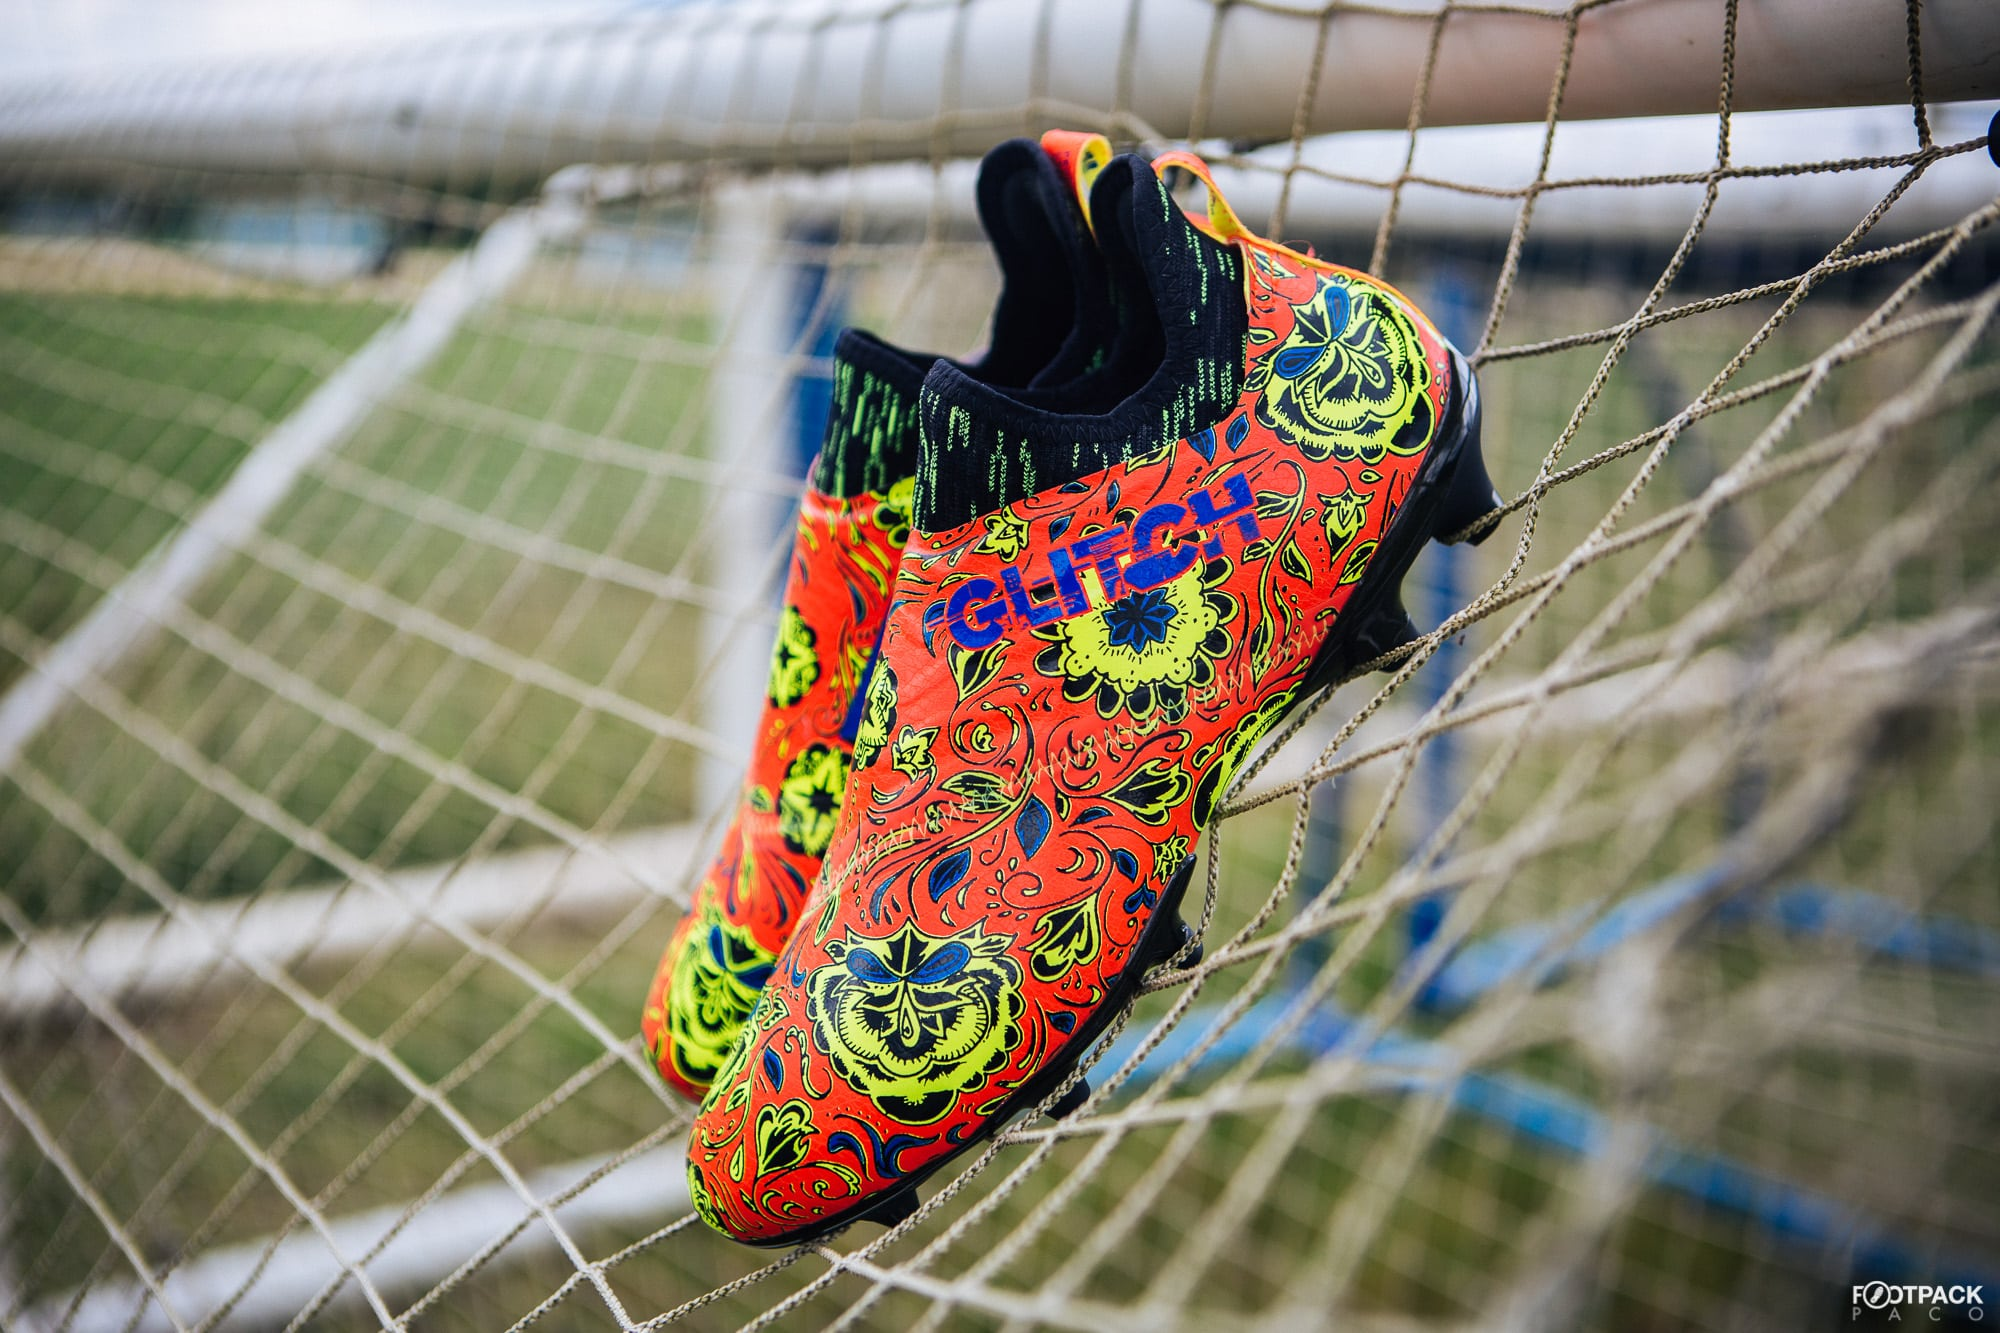 Chaussures-football-adidas-glitch-18-2-0-Worldskin-France-Coupe-Monde-Juin-2018-9